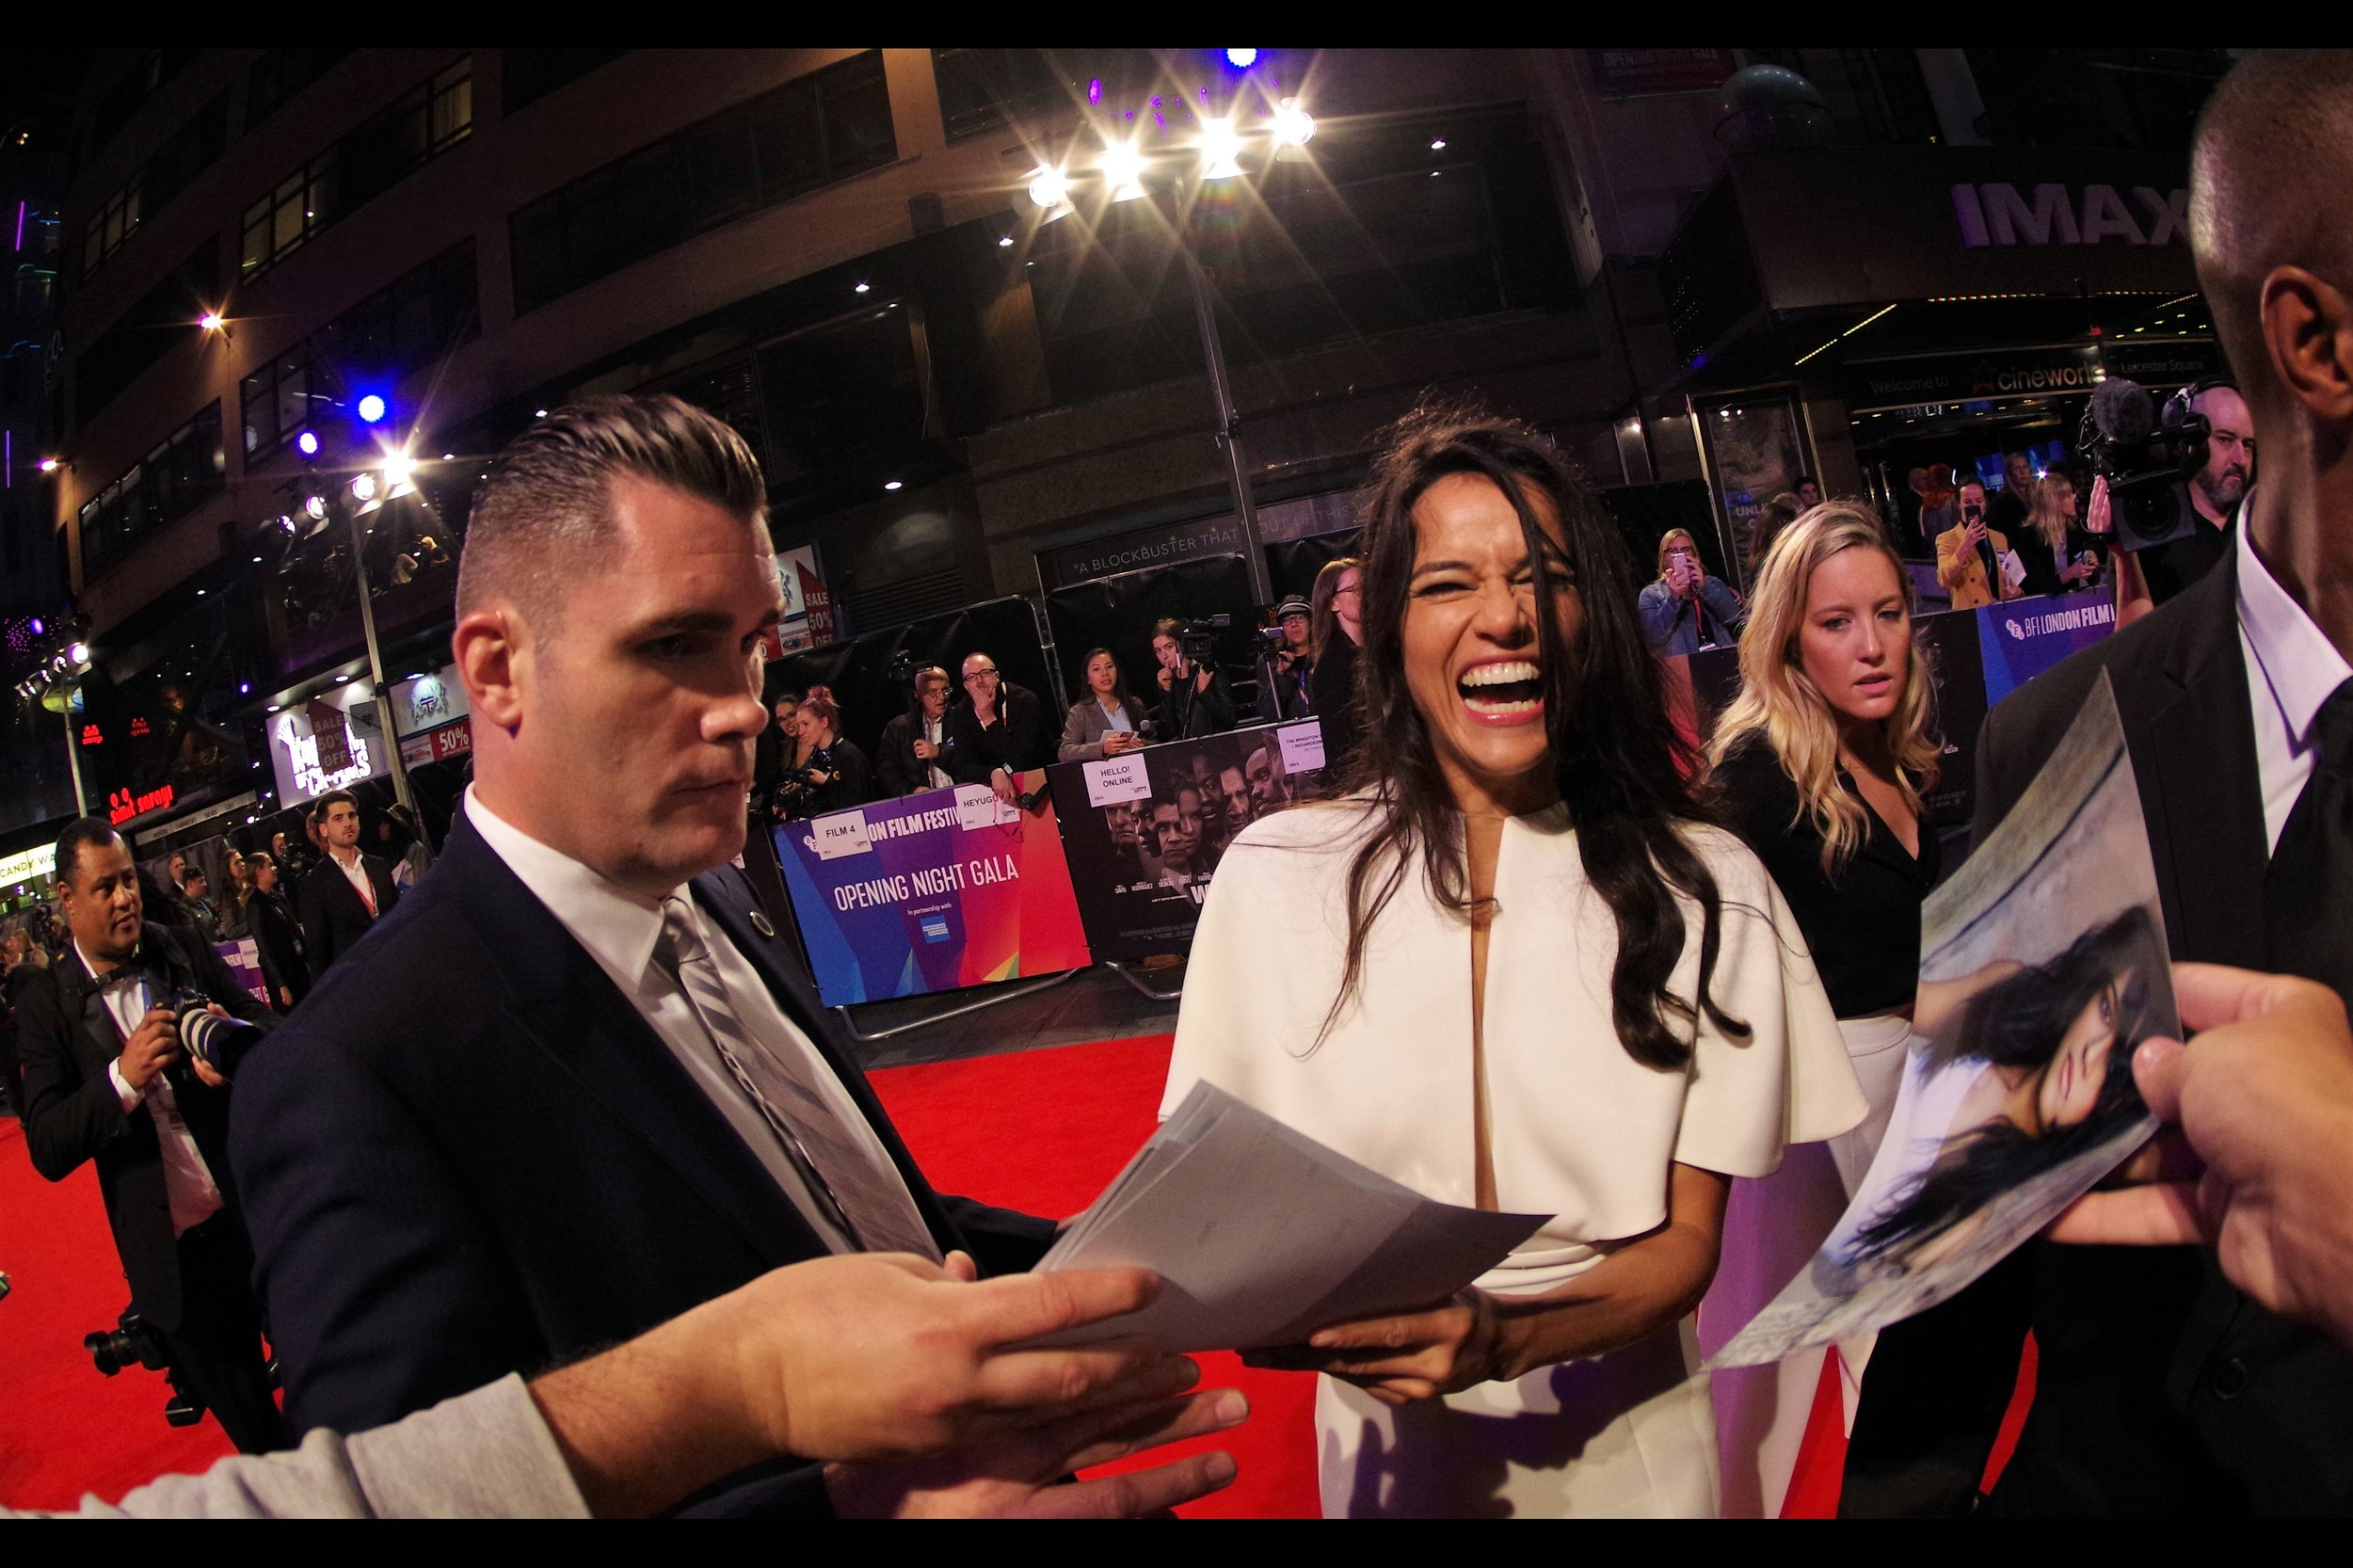 """""""That's Zoe Saldana… but sure I'll sign it!""""  - for an idea of the kind of madness this premiere has descended to on my side of the barrier : none of the hands coming from beneath and/or beside this photo are mine."""